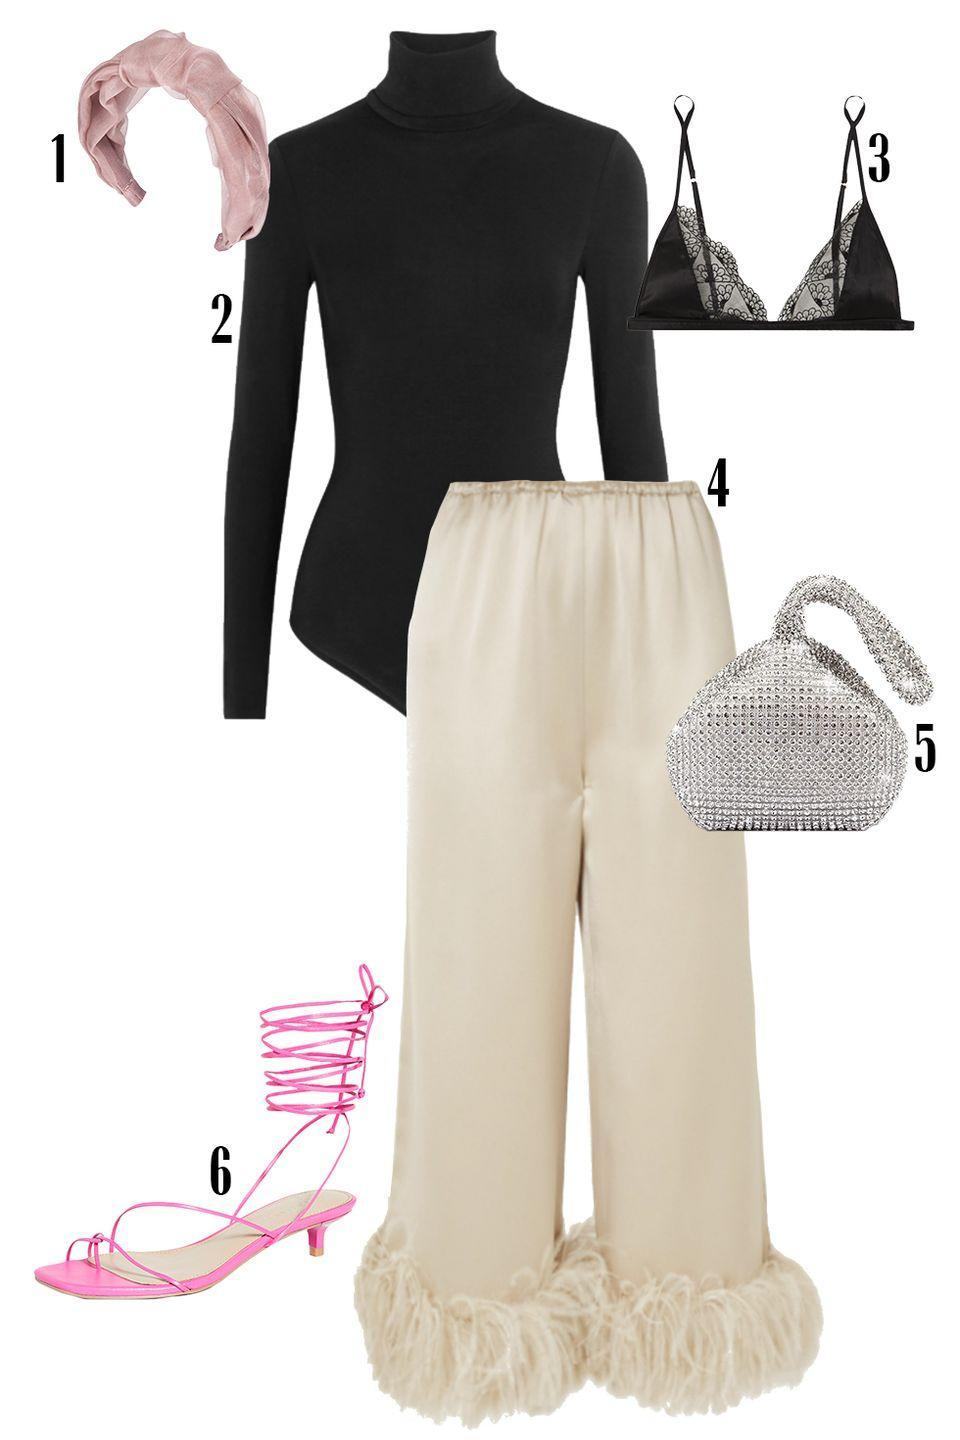 """<p>Get the party started by pairing your black turtleneck with these satin and feather-trimmed pants that are sure to catch everyone's eye. Add equally exciting accessories like a crystal embellished bag, pink kitten heels, and a matching headband. </p><p> Shop the pieces: <em><a href=""""https://www.jenniferbehr.com/products/fanny-headband-in-silk-organza?variant=Dusty%20Rose"""" rel=""""nofollow noopener"""" target=""""_blank"""" data-ylk=""""slk:Jennifer Behr Headband"""" class=""""link rapid-noclick-resp"""">Jennifer Behr Headband</a></em><em>,</em> $198; <em><a href=""""https://www.net-a-porter.com/en-us/shop/product/wolford/colorado-thong-bodysuit/618045"""" rel=""""nofollow noopener"""" target=""""_blank"""" data-ylk=""""slk:Wolford Colorado Bodysuit"""" class=""""link rapid-noclick-resp"""">Wolford Colorado Bodysuit</a></em>, $250; <em><a href=""""https://www.net-a-porter.com/en-us/shop/product/coco-de-mer/evita-scalloped-lace-and-stretch-satin-soft-cup-triangle-bra/1310365"""" rel=""""nofollow noopener"""" target=""""_blank"""" data-ylk=""""slk:Coco De Mar Bralette"""" class=""""link rapid-noclick-resp"""">Coco De Mar Bralette</a></em>, $195; <em><a href=""""https://www.net-a-porter.com/en-us/shop/product/16arlington/mandrake-feather-trimmed-satin-wide-leg-pants/1318850"""" rel=""""nofollow noopener"""" target=""""_blank"""" data-ylk=""""slk:16 Arlington Pants"""" class=""""link rapid-noclick-resp"""">16 Arlington Pants</a>,</em> $1,020; <em><a href=""""https://www.amazon.com/Triangle-Rhinestones-Fashion-Evening-Wedding/dp/B01CDUKAPE/ref=sr_1_5?dchild=1&keywords=SILVER+MINI+BAG&qid=1612820476&sr=8-5"""" rel=""""nofollow noopener"""" target=""""_blank"""" data-ylk=""""slk:Evening Clutch"""" class=""""link rapid-noclick-resp"""">Evening Clutch</a></em>, $16, <em><a href=""""https://www.shopbop.com/river-sandal-villa-rouge/vp/v=1/1514517648.htm?folderID=13446&fm=other-shopbysize-viewall&os=false&colorId=11411&ref_=SB_PLP_EC_100&breadcrumb=Shoes%3ESandals%3ELow%20Heel%20(1%27%27%20-%202%27%27)"""" rel=""""nofollow noopener"""" target=""""_blank"""" data-ylk=""""slk:Villa Rouge Sandal"""" class=""""link rapid-noclick-resp"""">Villa Rouge """